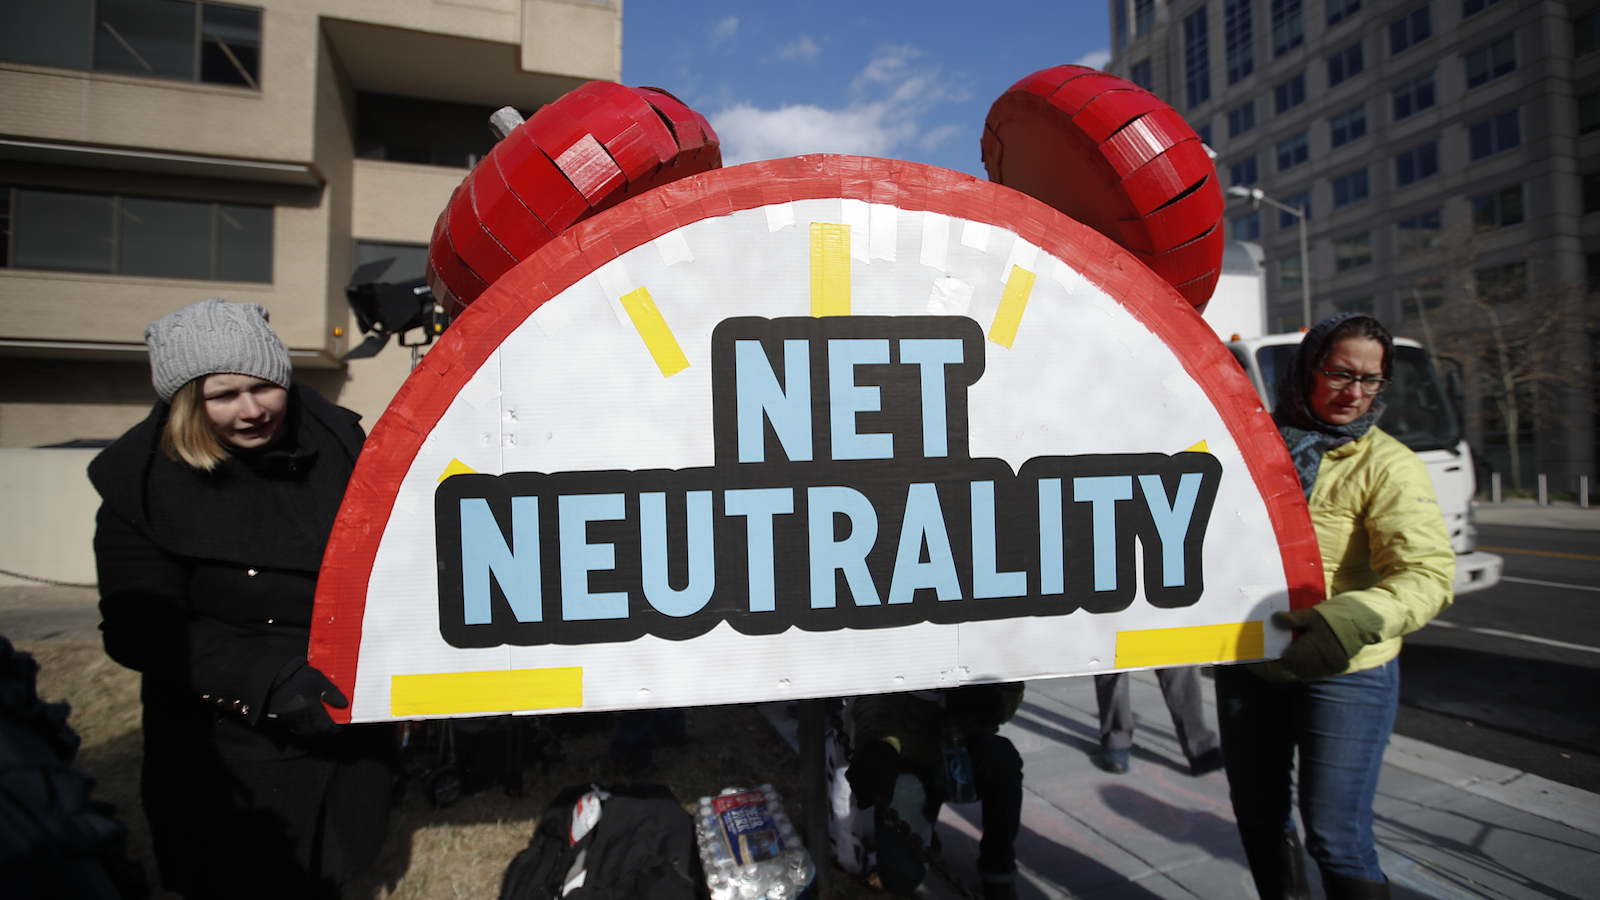 Net neutrality is no more. Here's what that means